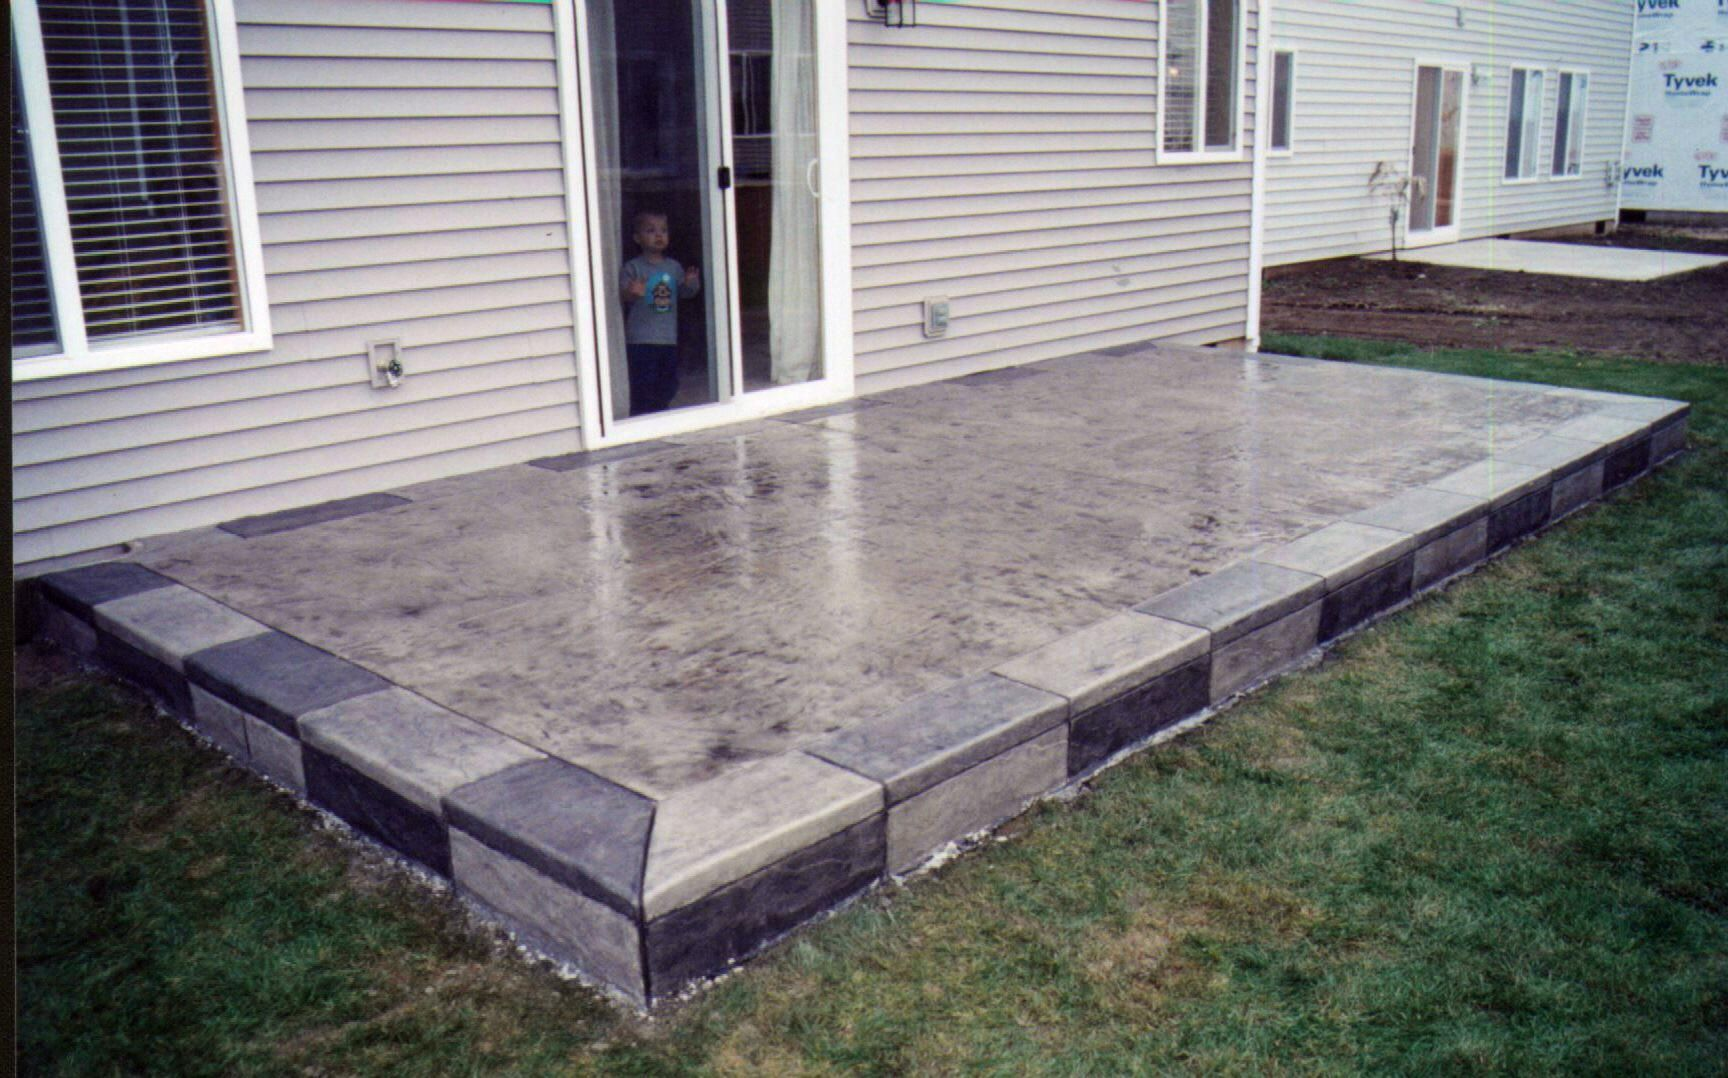 Best Concrete Patio Design Ideas Ideas - Travella.co - travella.co